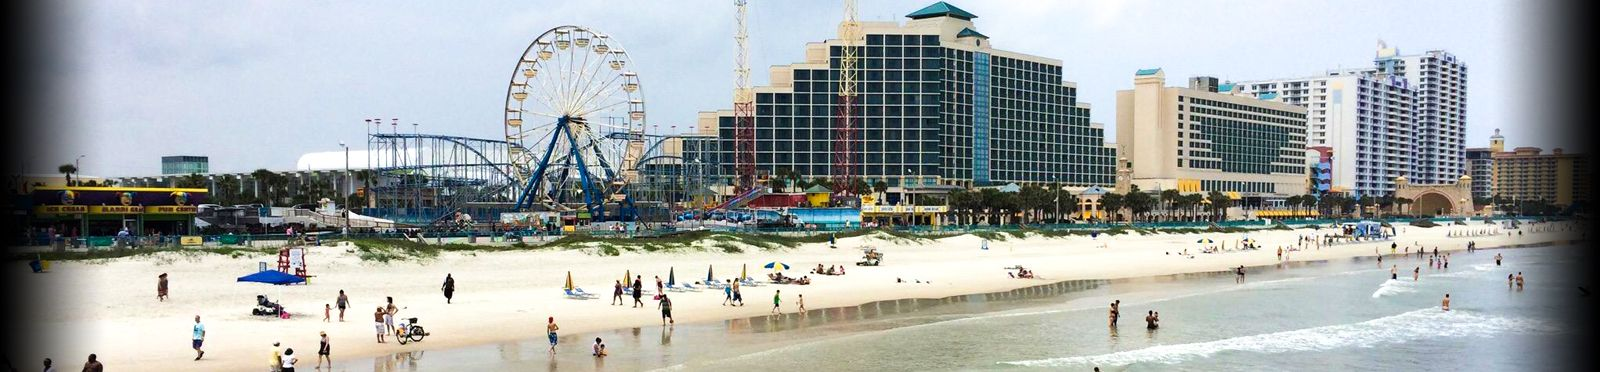 Daytona Beach Apartments And House Rentals FlipKey - Daytona beach oceanfront house rentals